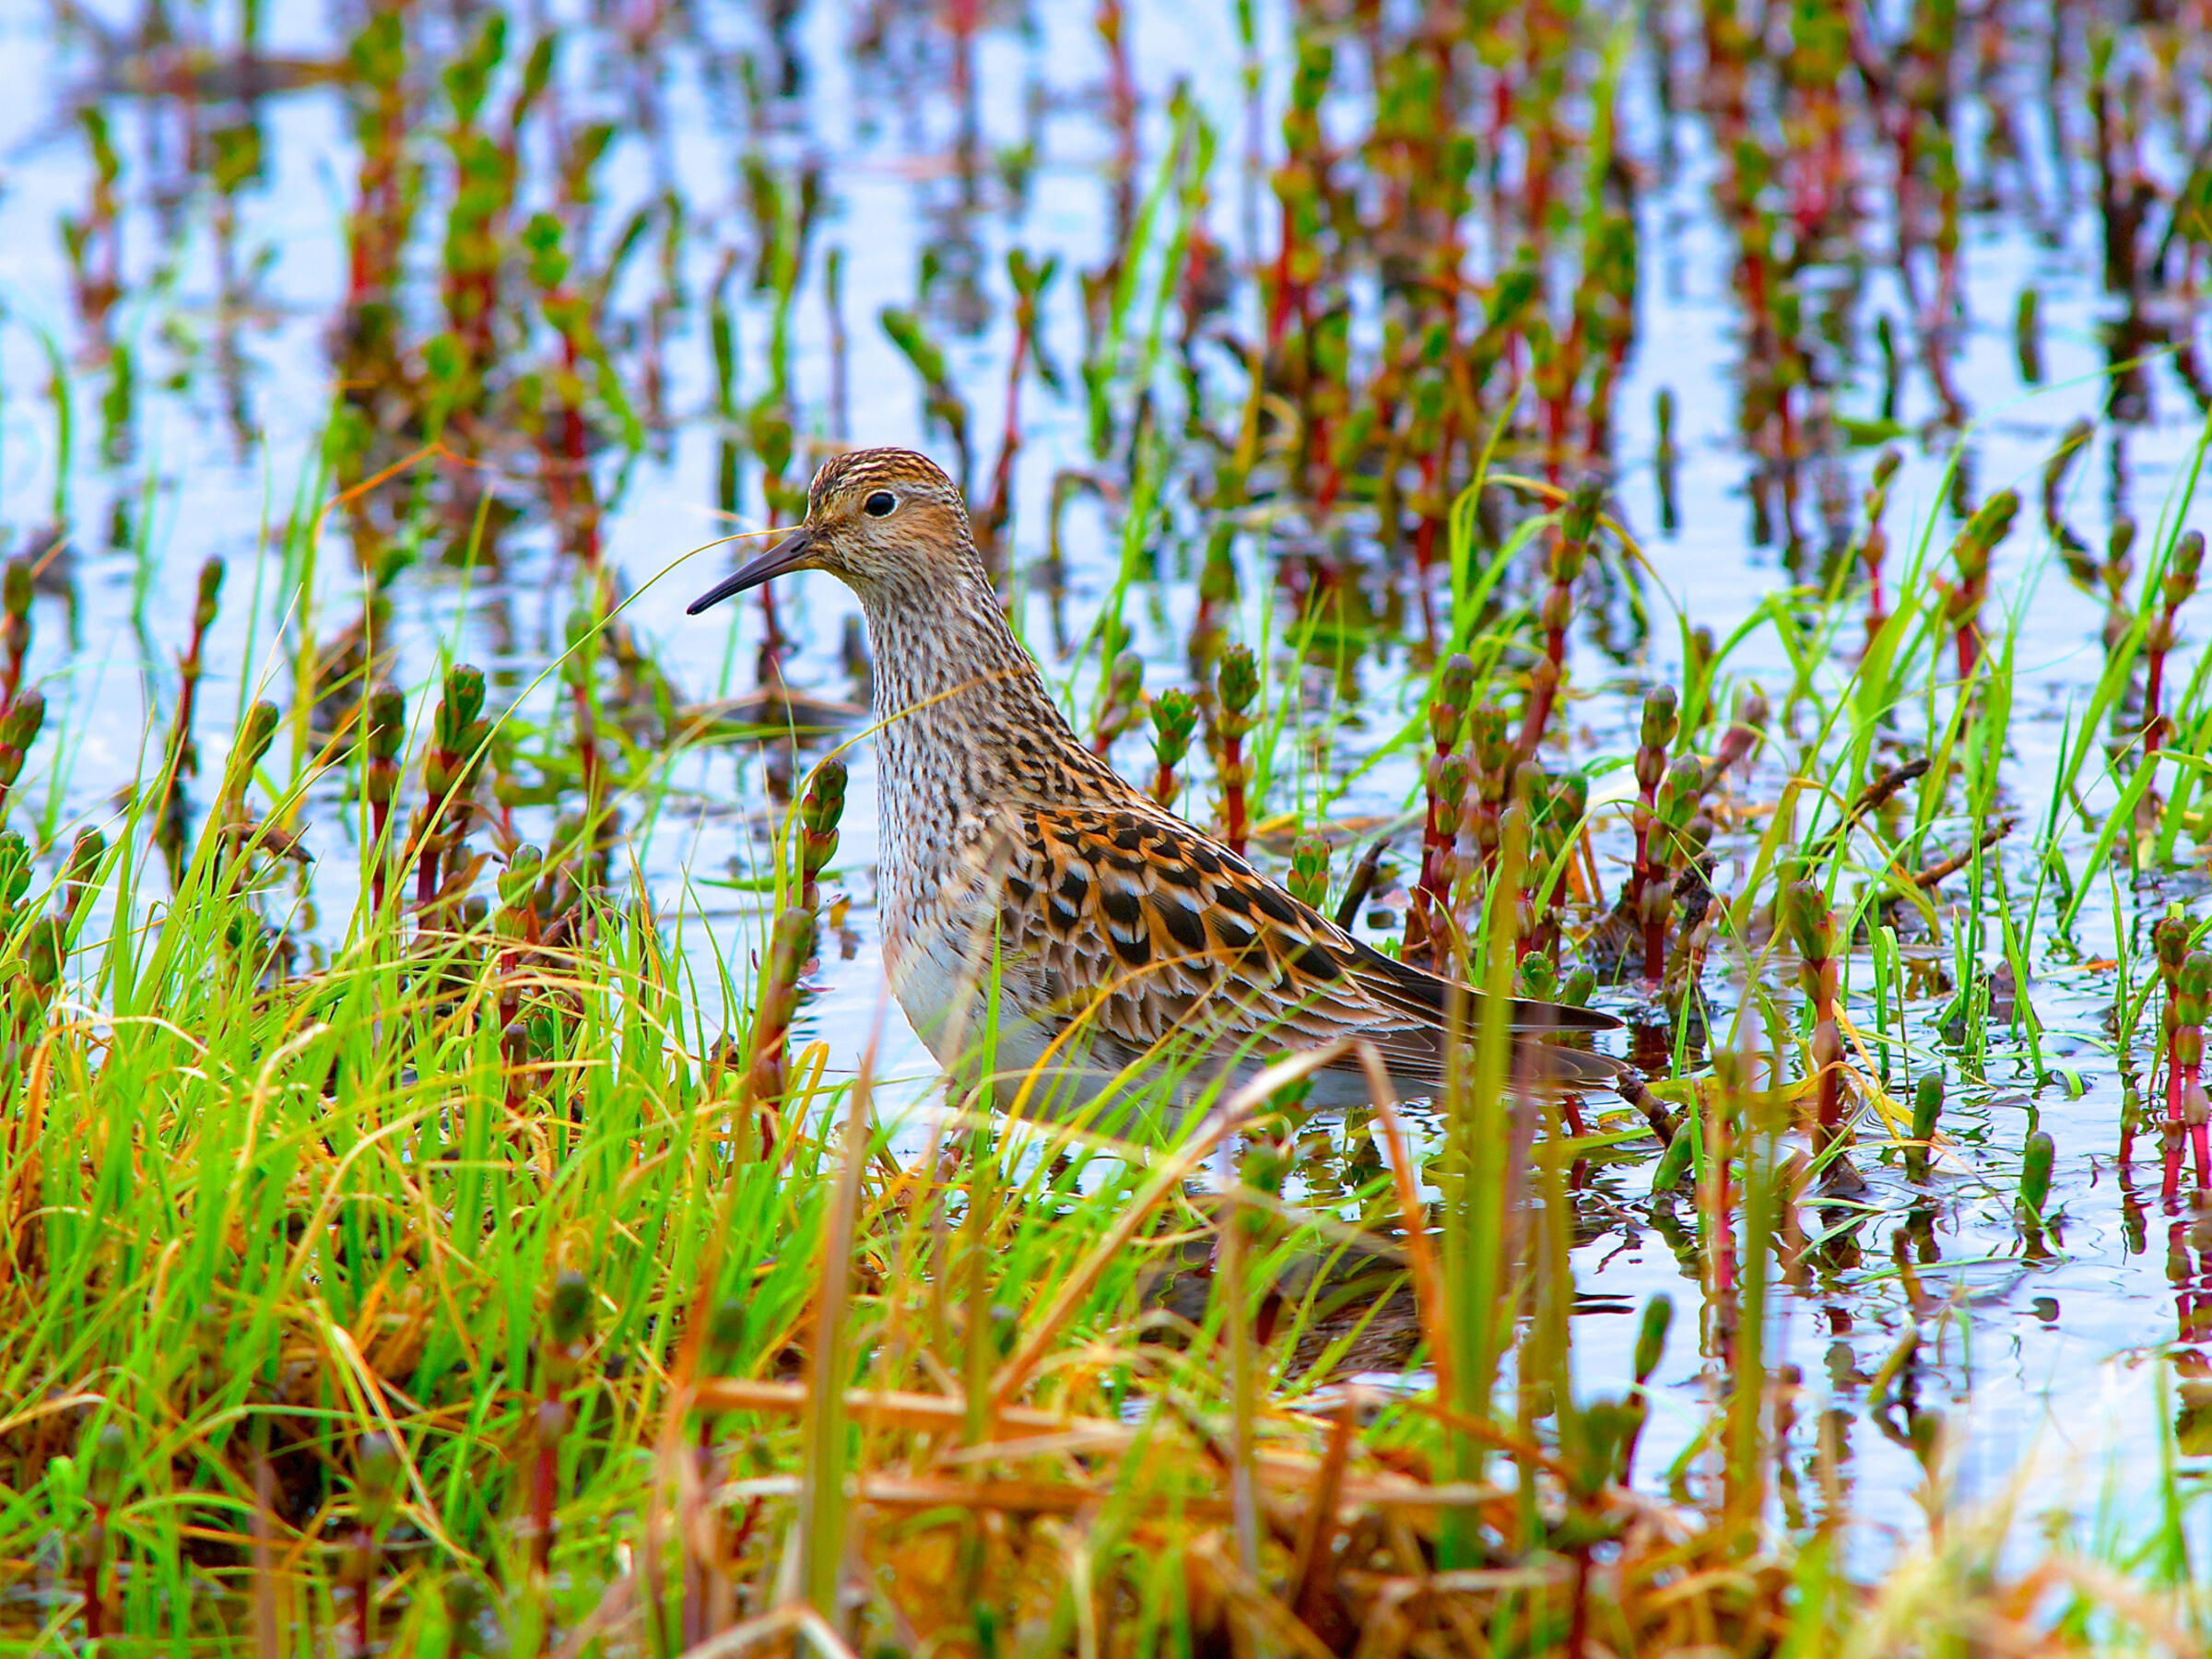 A Pectoral Sandpiper wading in reeds.